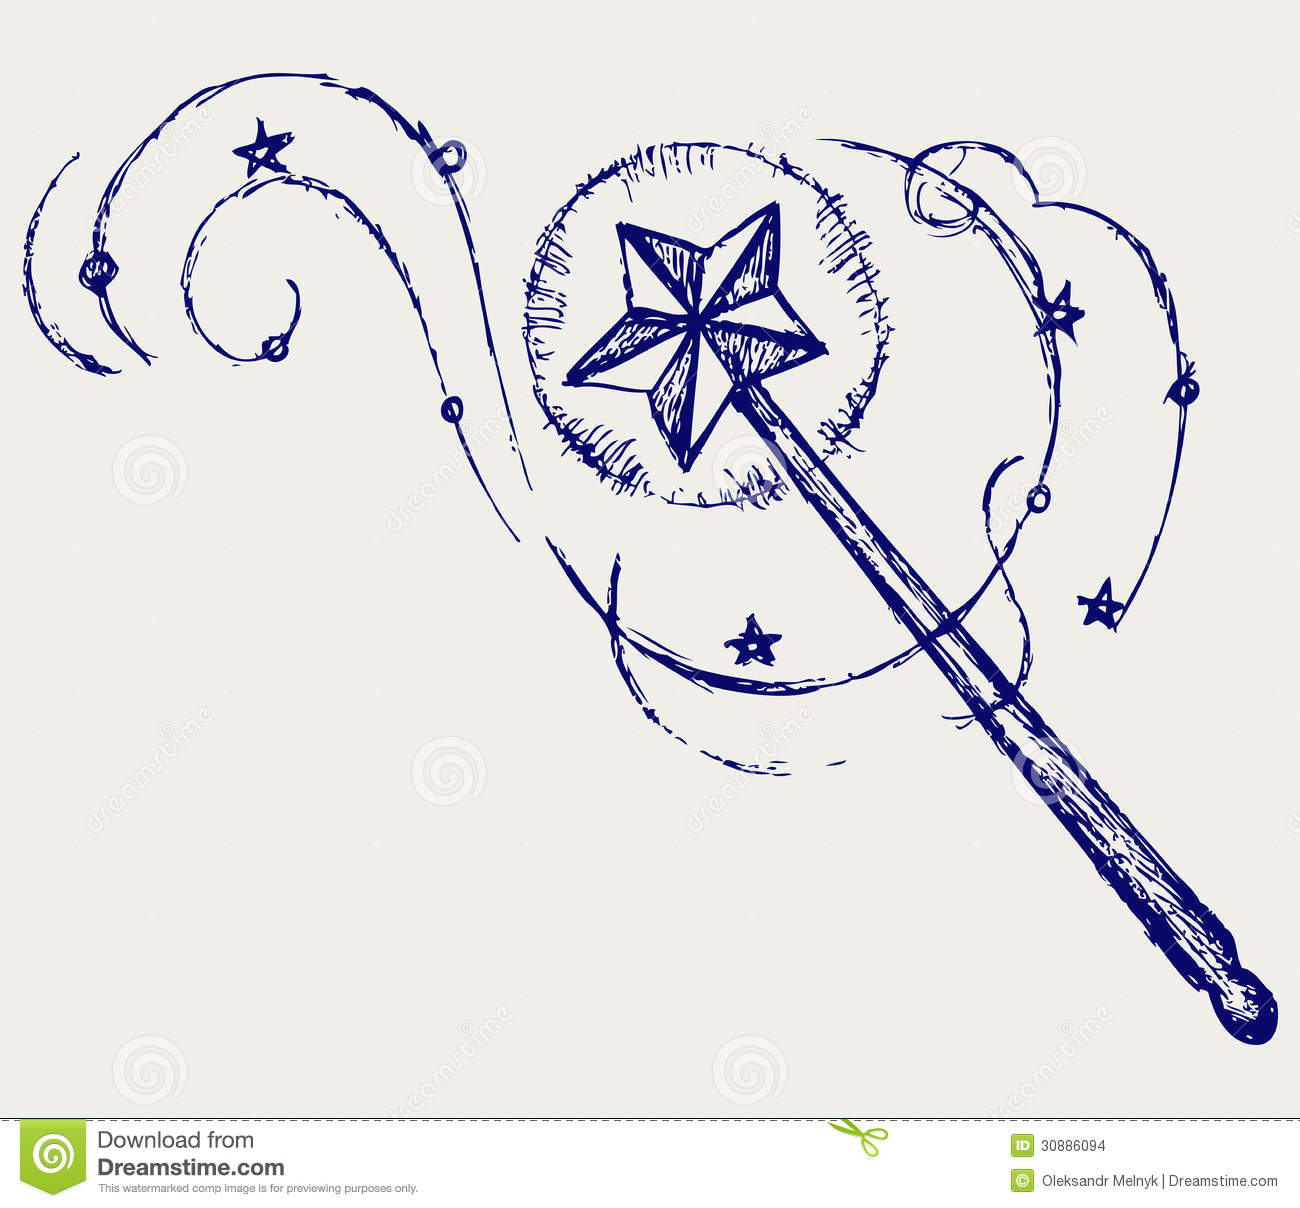 Magic wand. Doodle style. Vector illustration.